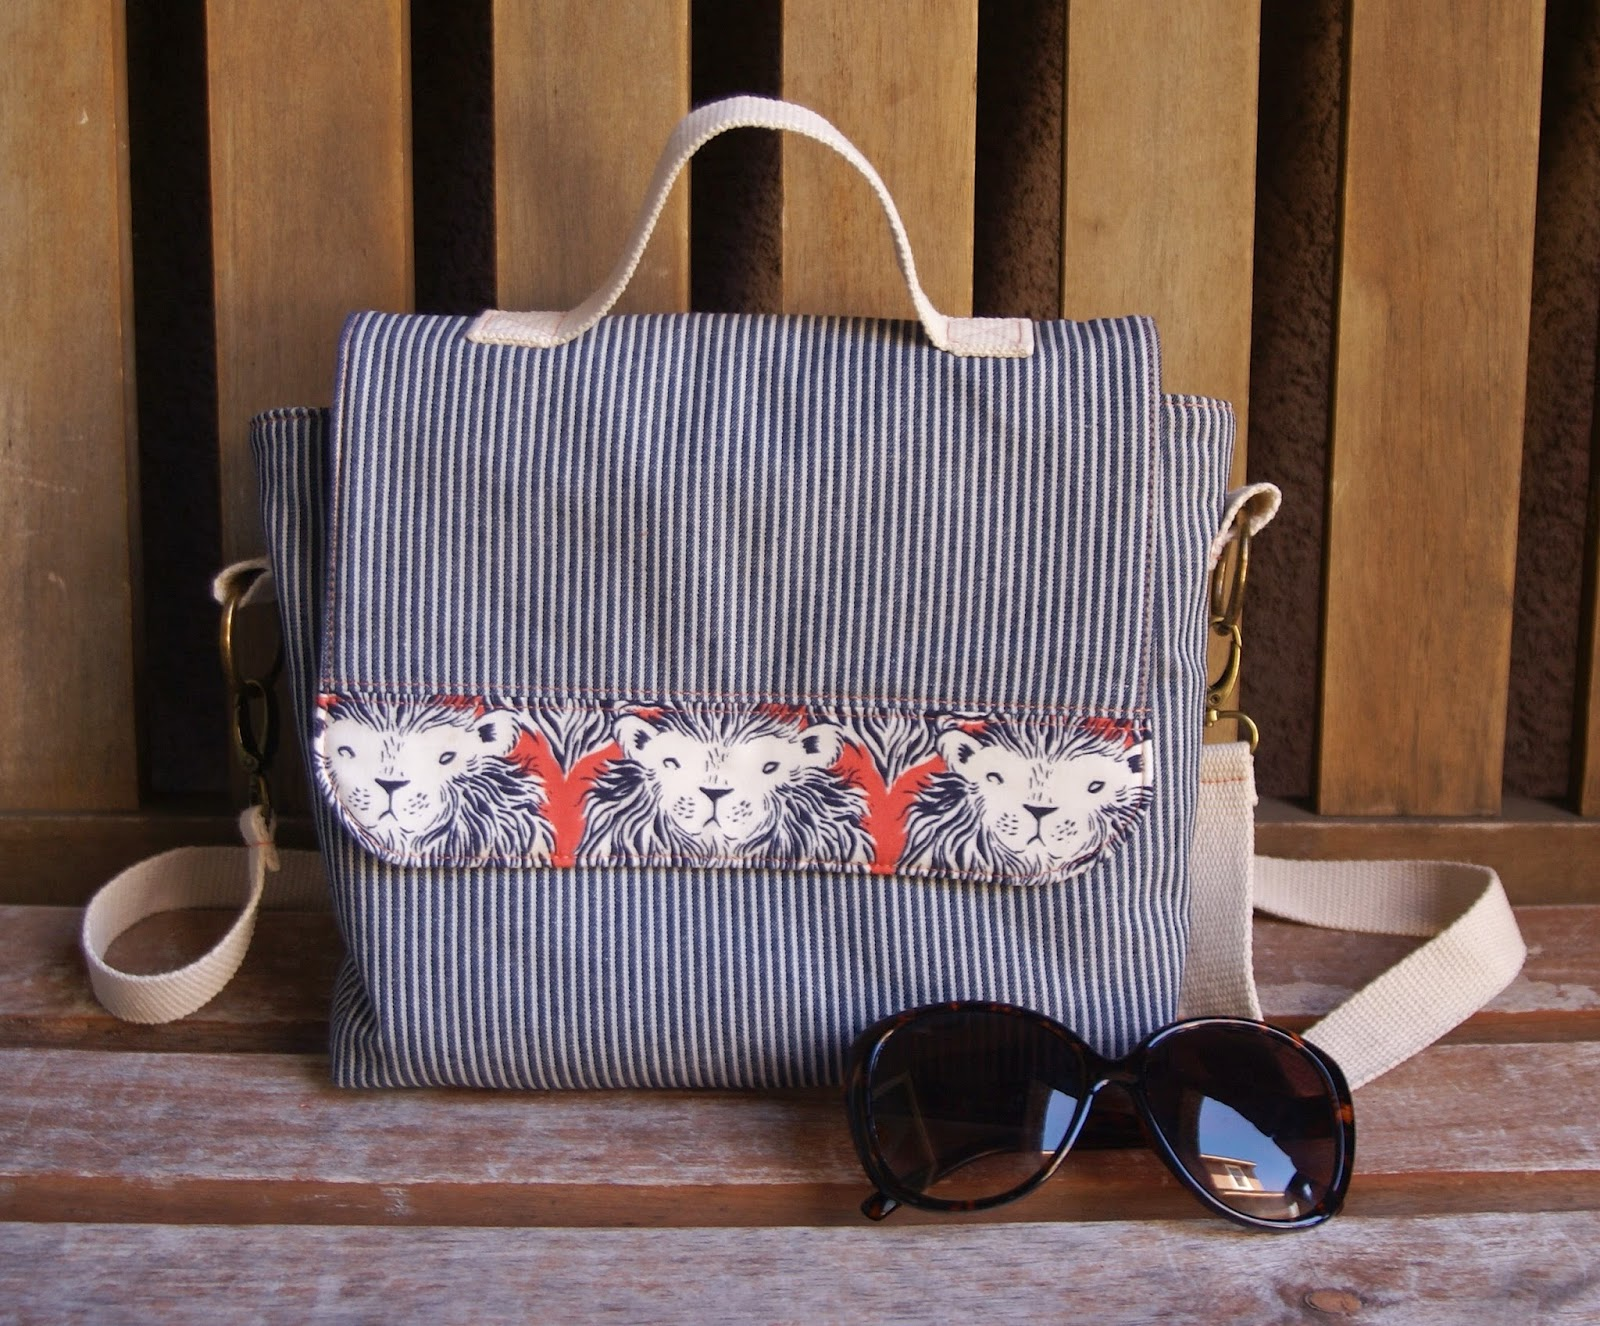 Malibu Satchel Tutorial by Heidi Staples of Fabric Mutt